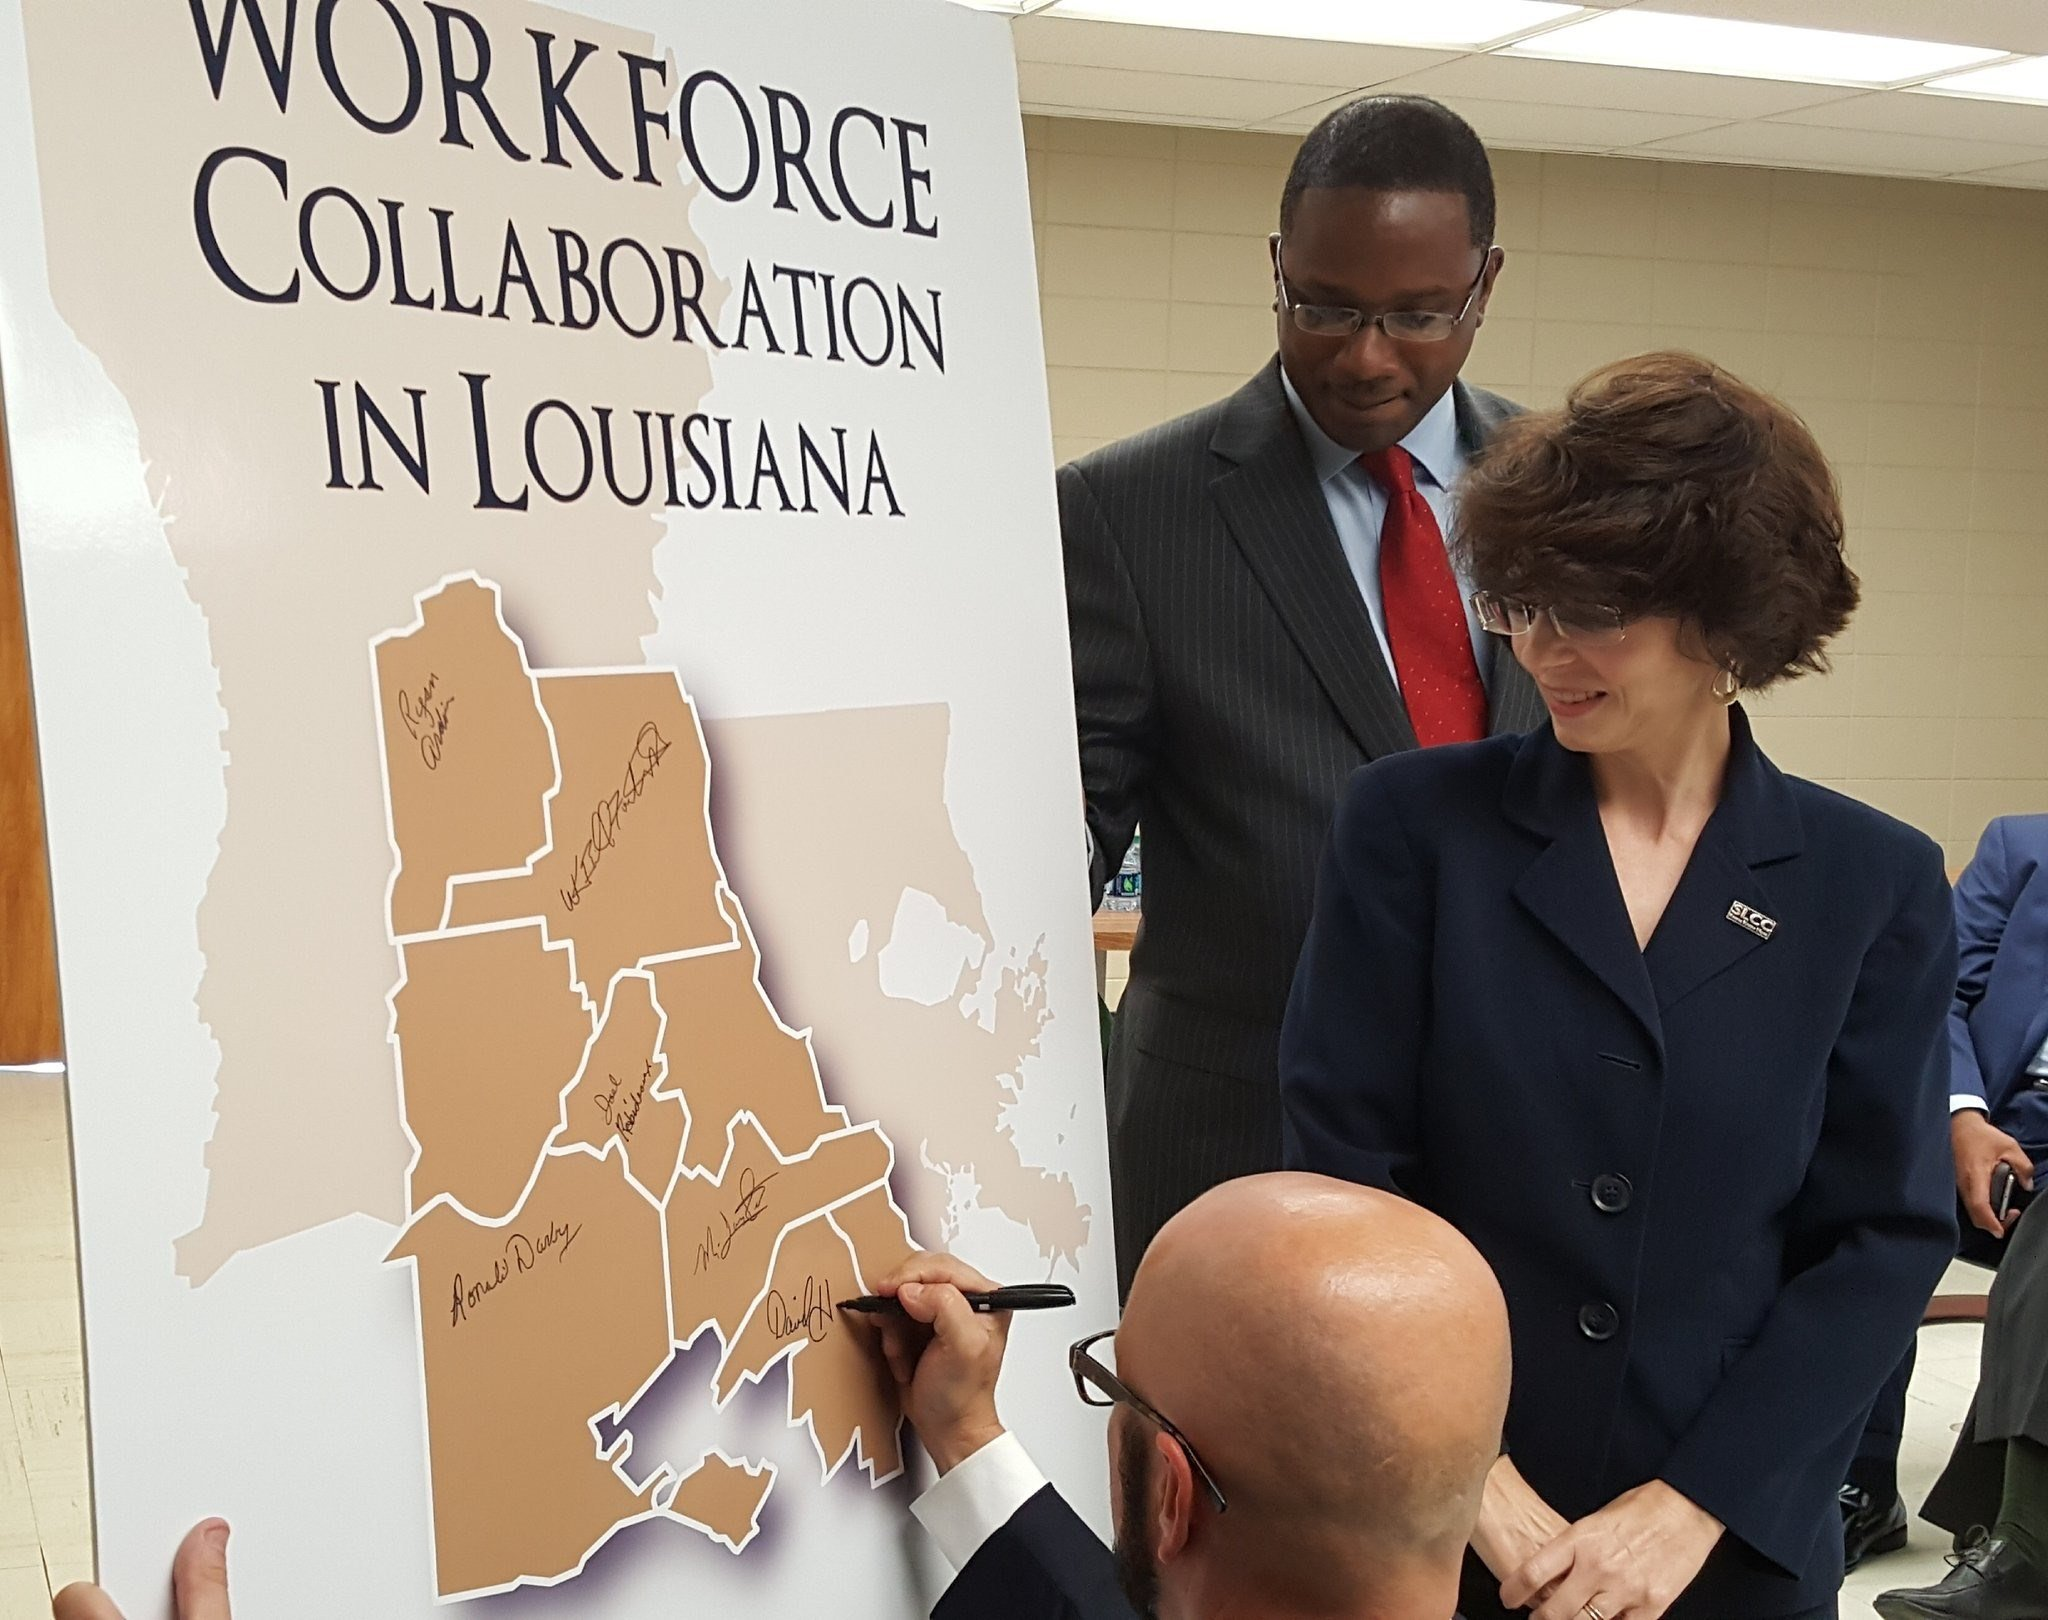 David Hanagriff, St. Mary Parish President, signs a workforce collaboration agreement during a press announcement at SLCC's T.H. Harris Campus. SLCC Chancellor Dr. Natalie Harder is pictured along with SLCC's Associate Vice President of Economic and Workf